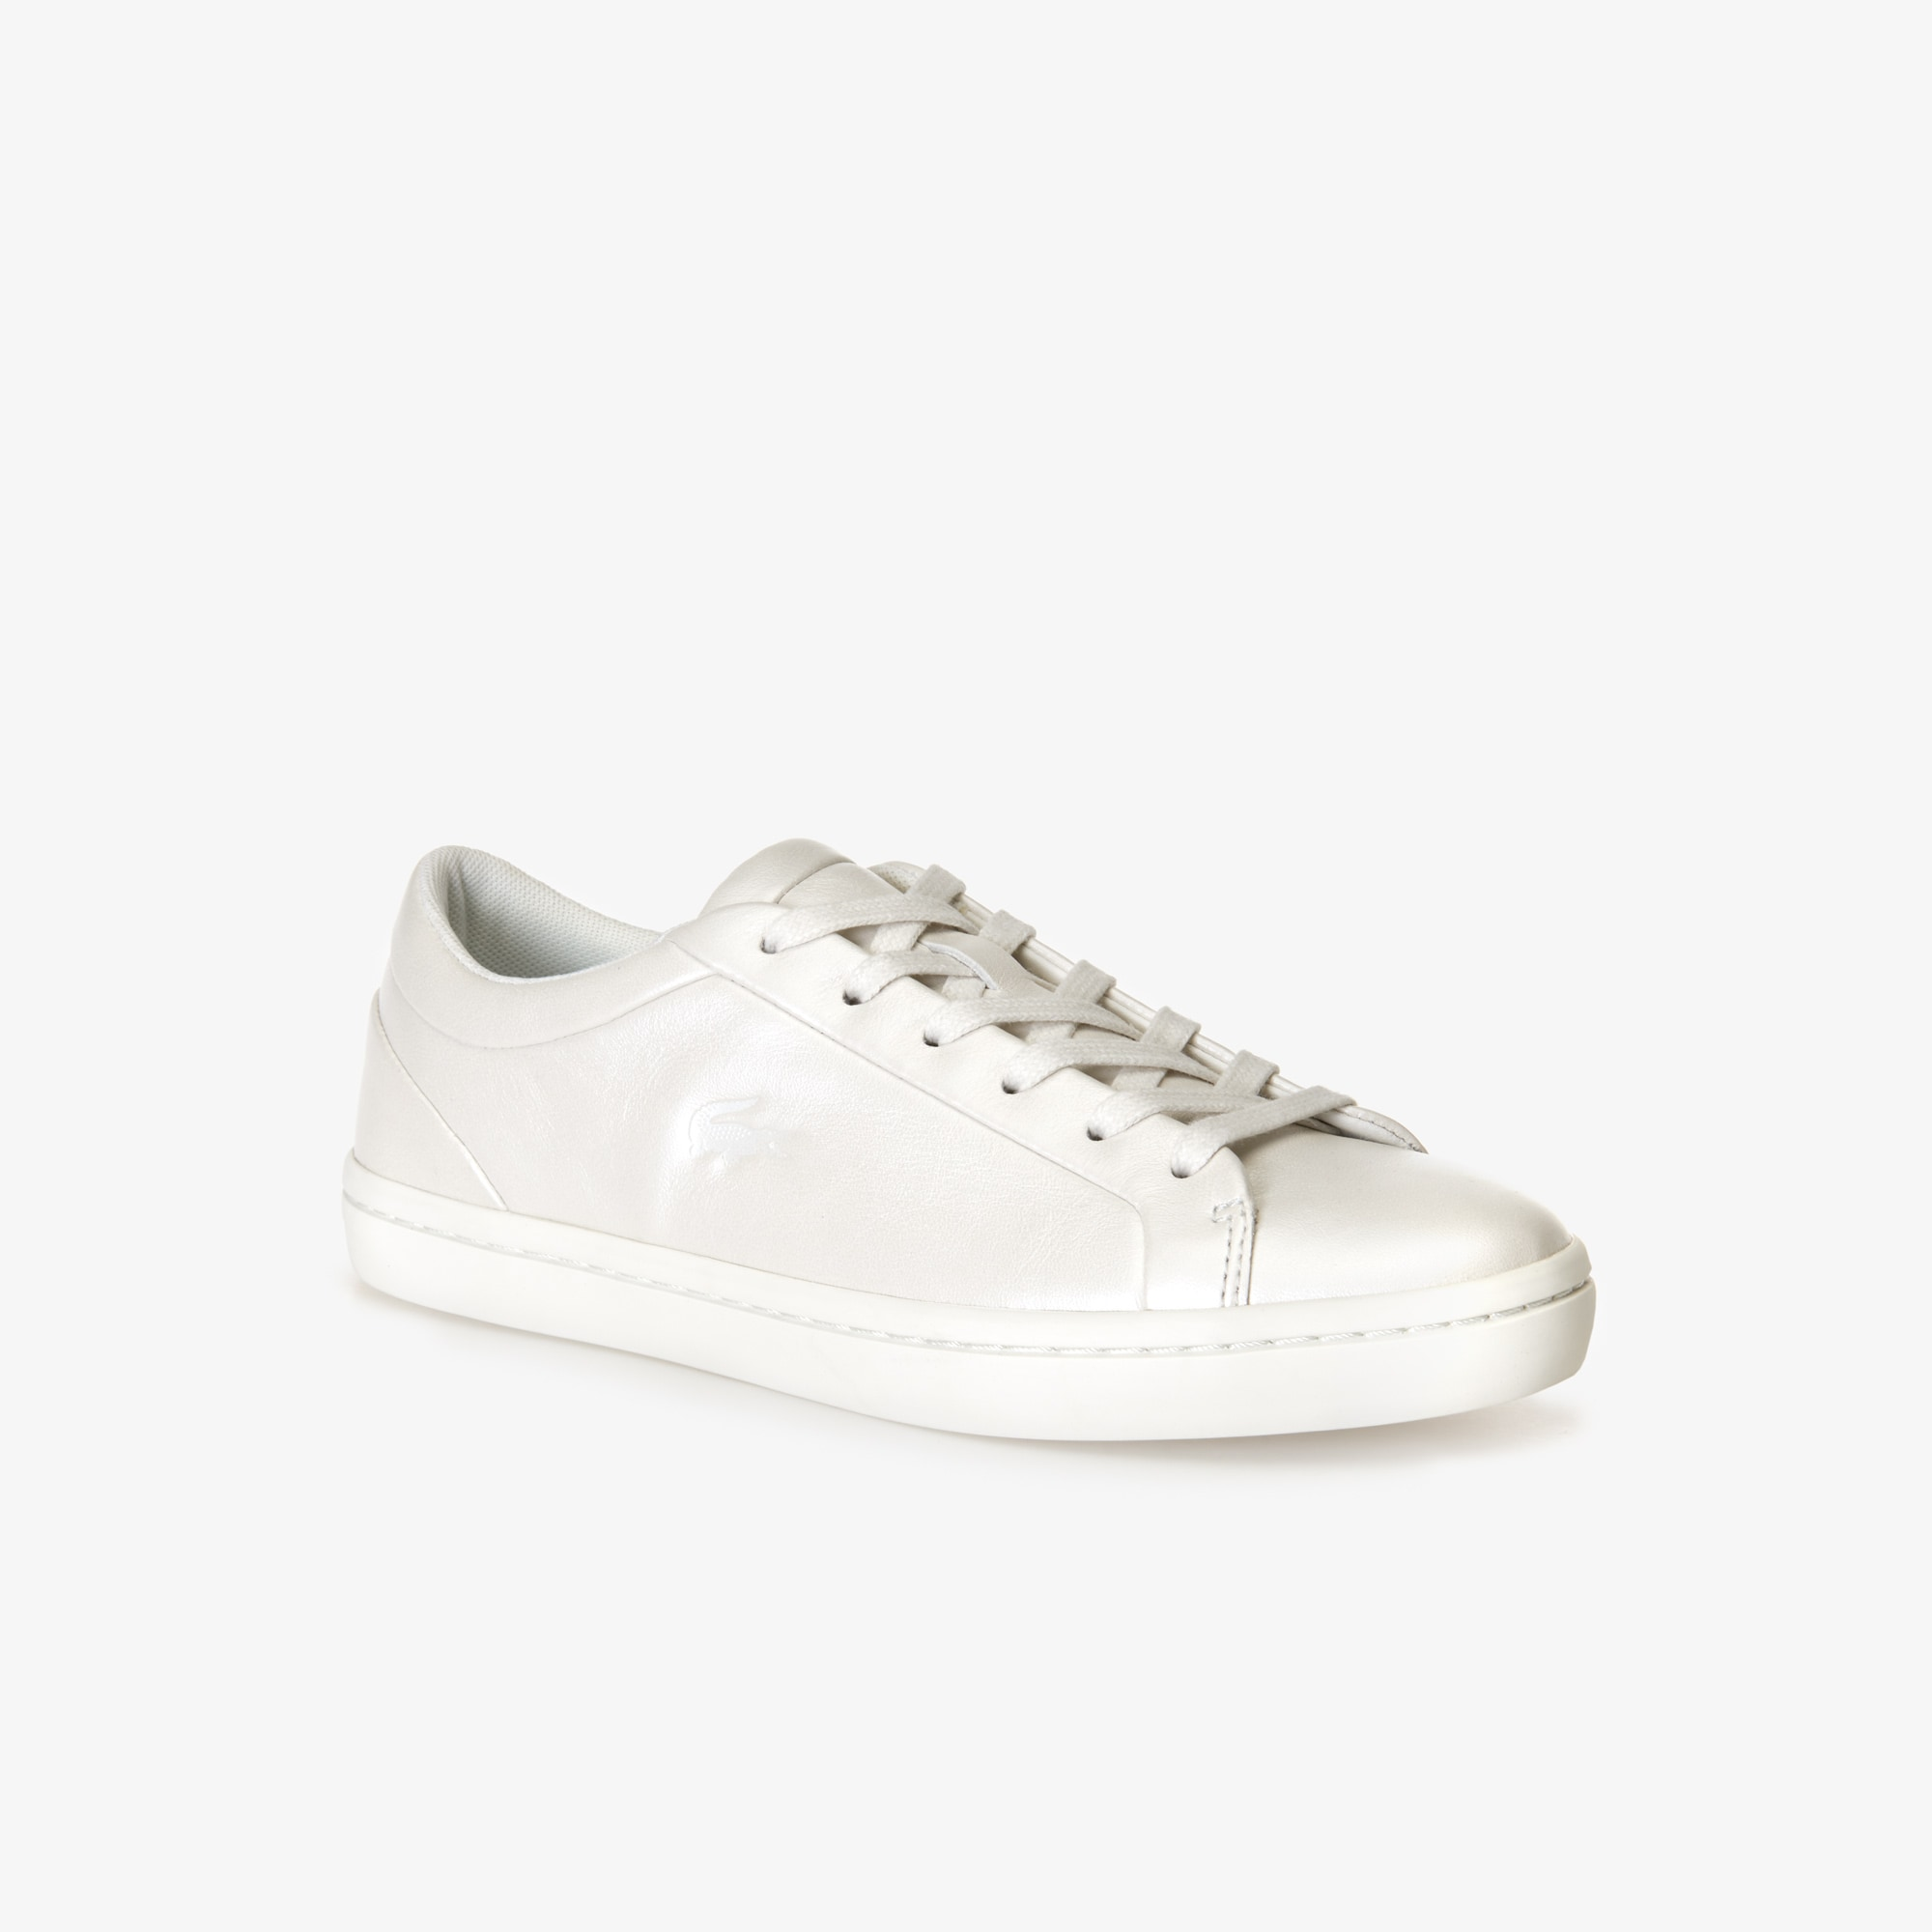 347789ef5 Women s Straightset Leather Trainers with Tonal Croc